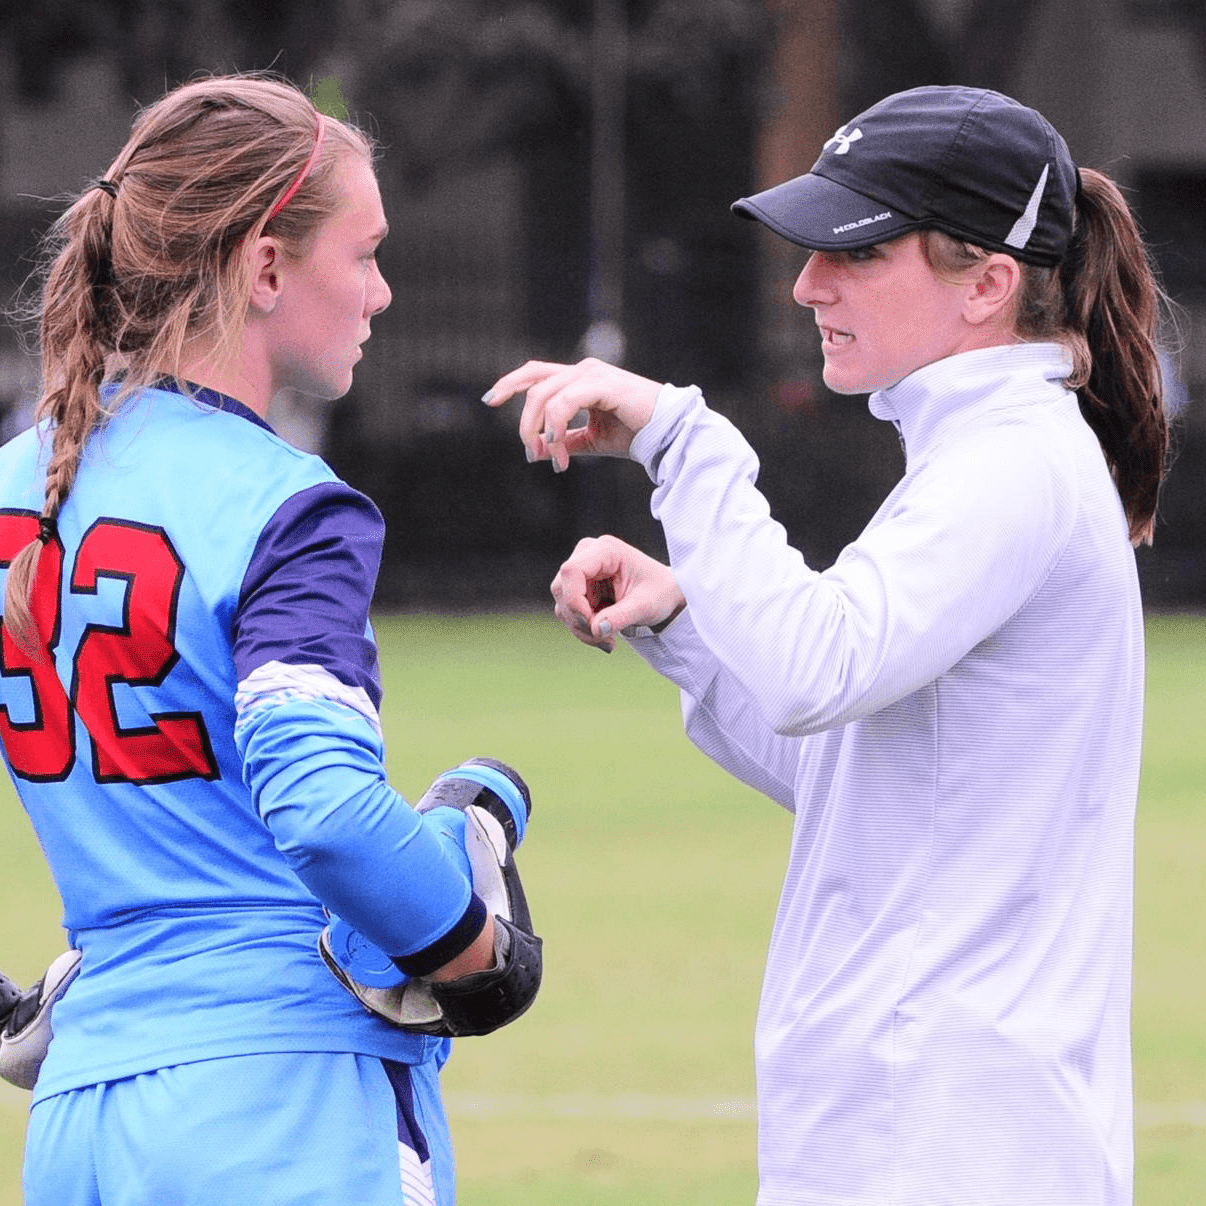 Molly Poletto, Boston University Women's Soccer Assistant Coach